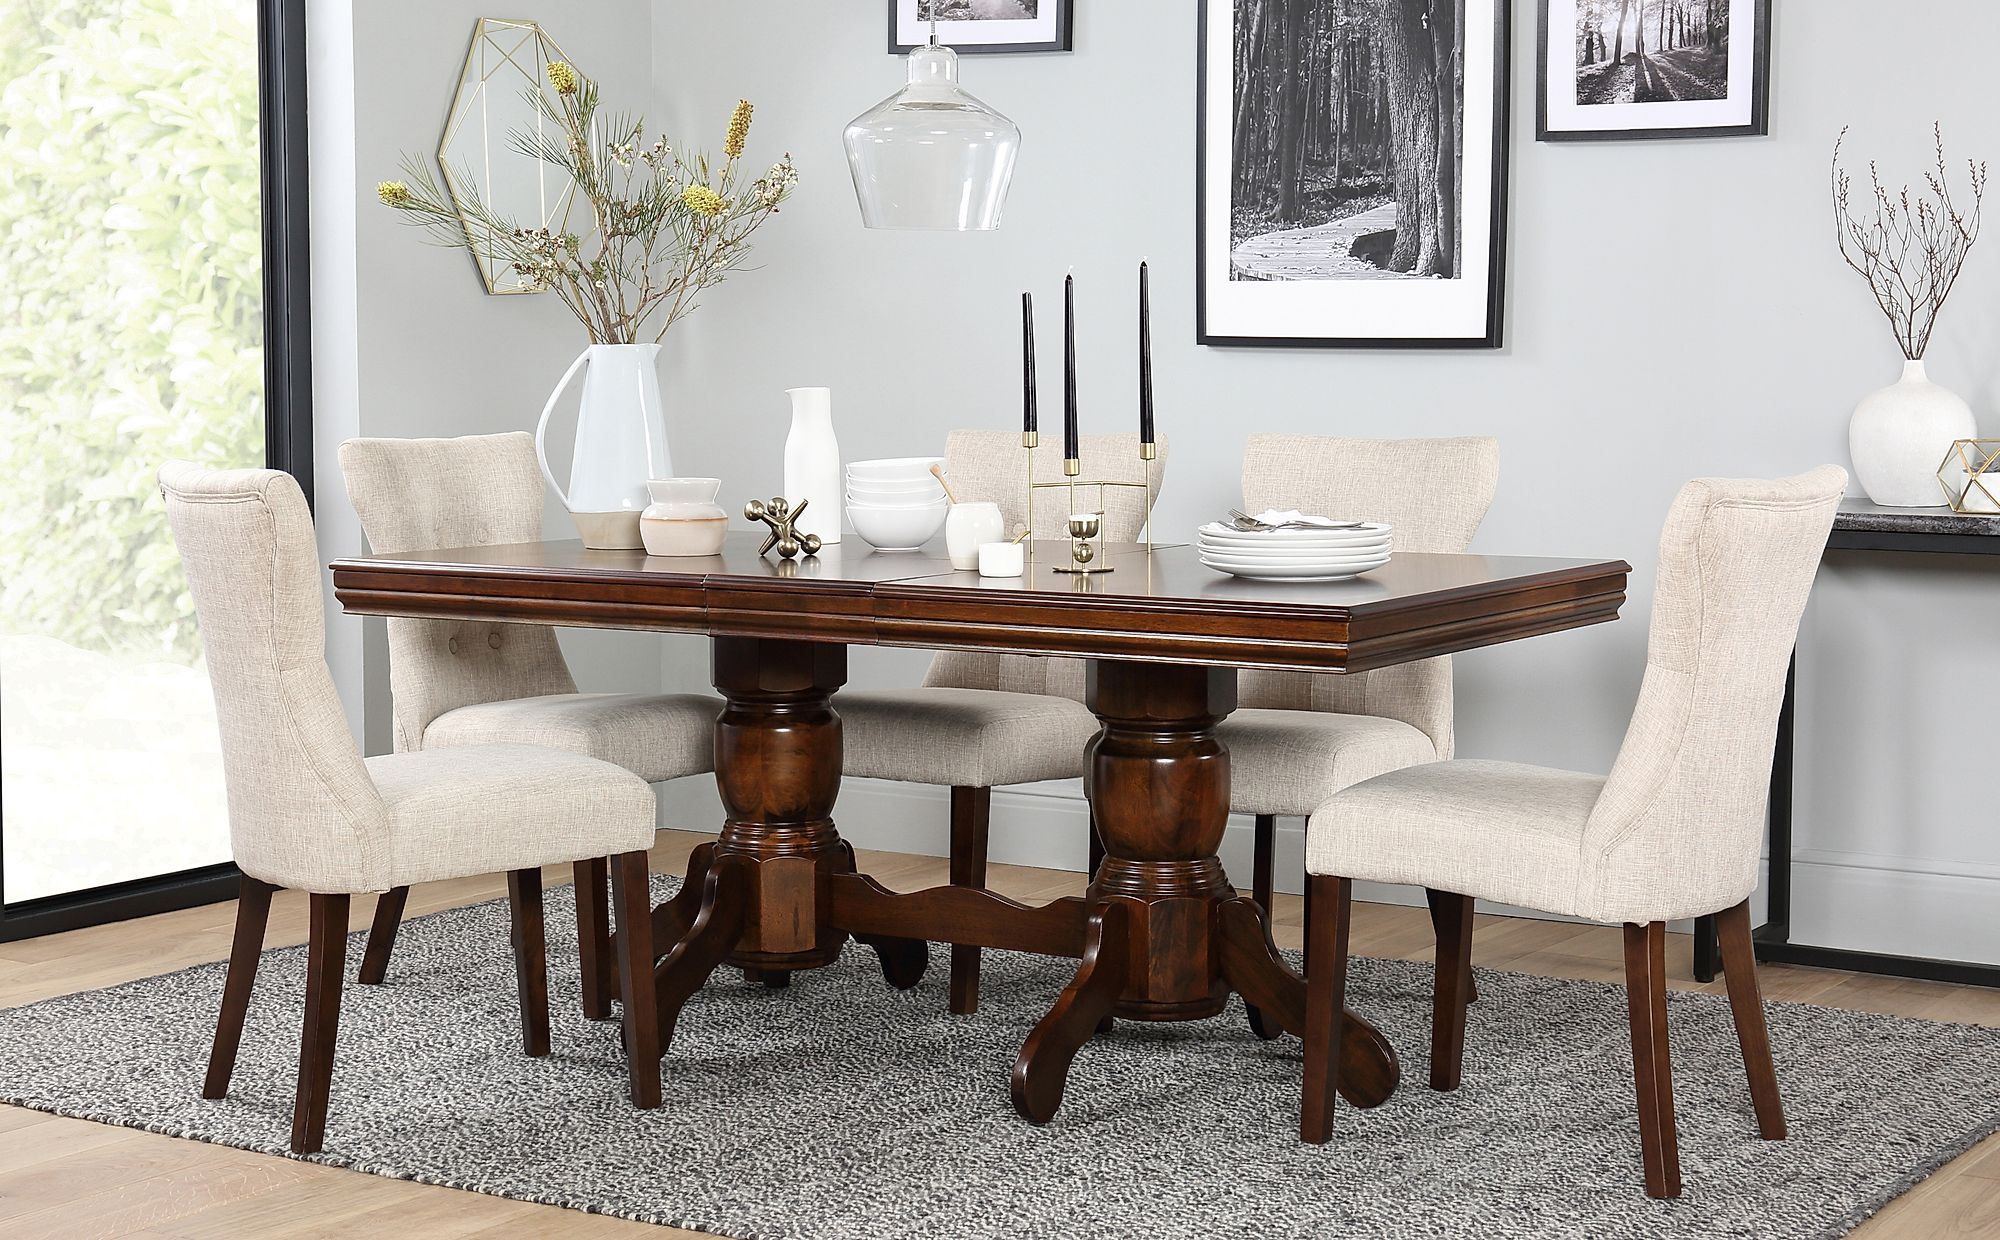 264c64875a Gallery. Chatsworth Dark Wood Extending Dining Table and 6 Chairs Set ...